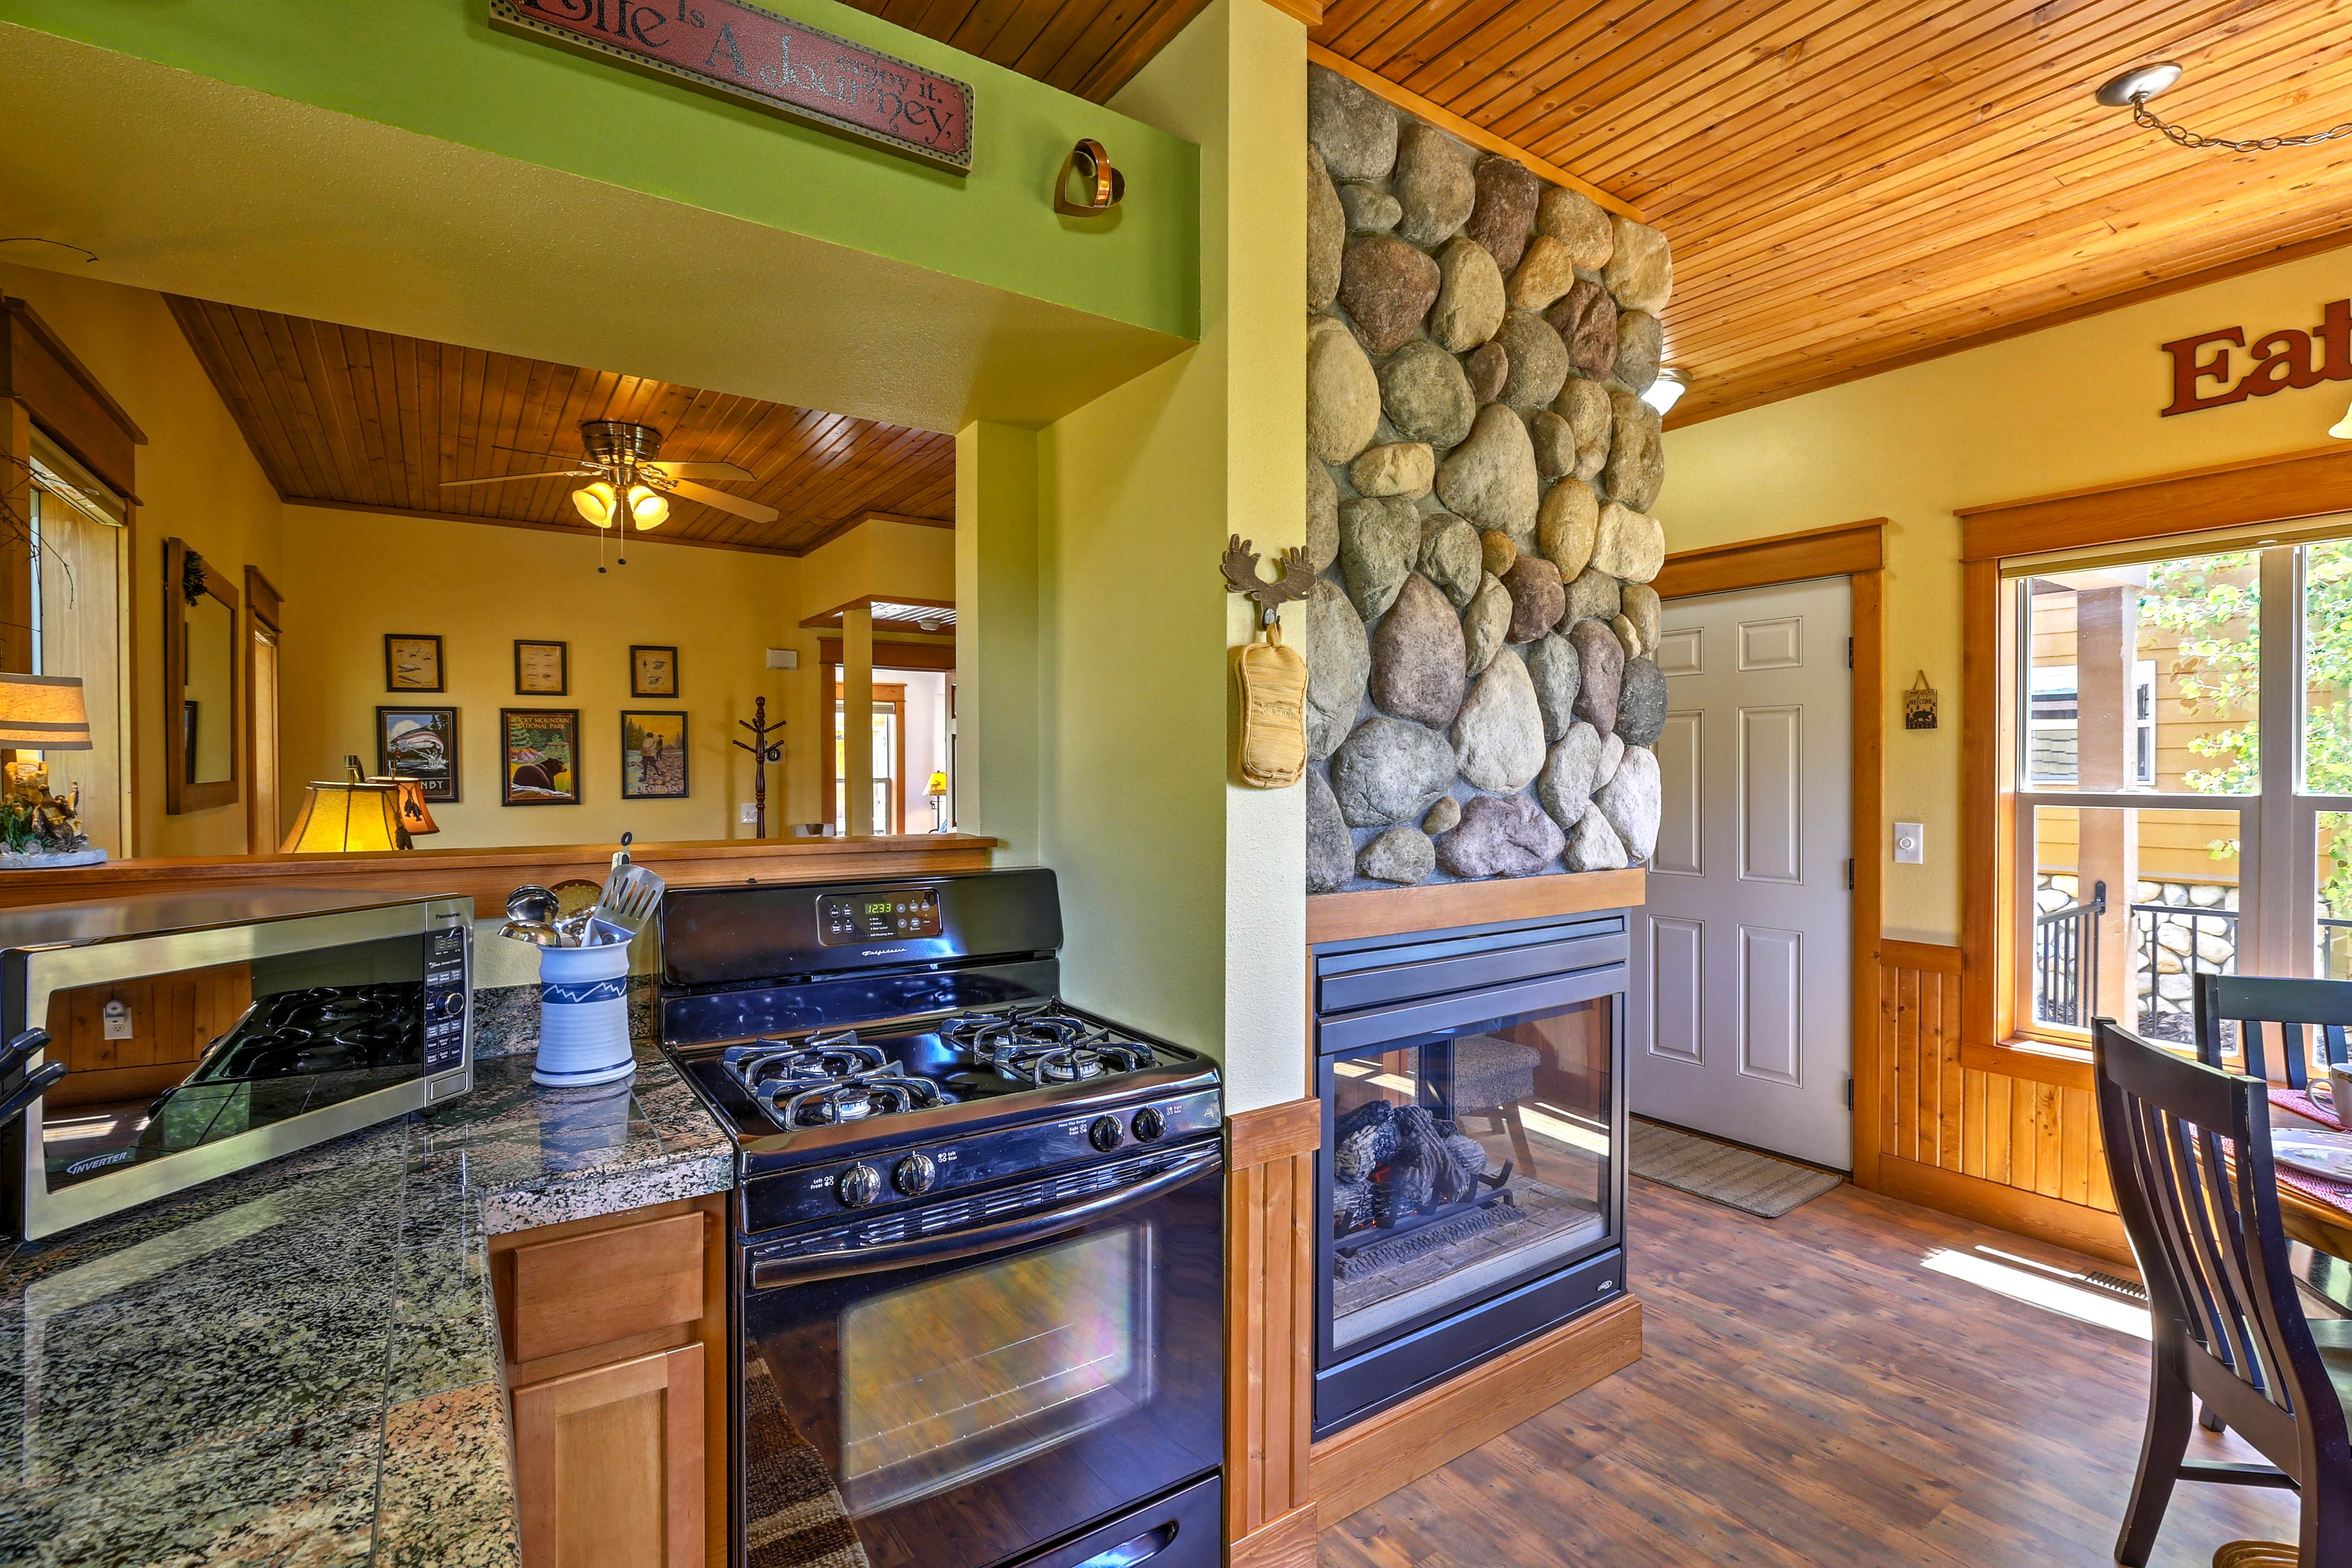 The cabin blends mountain charm with modern conveniences.